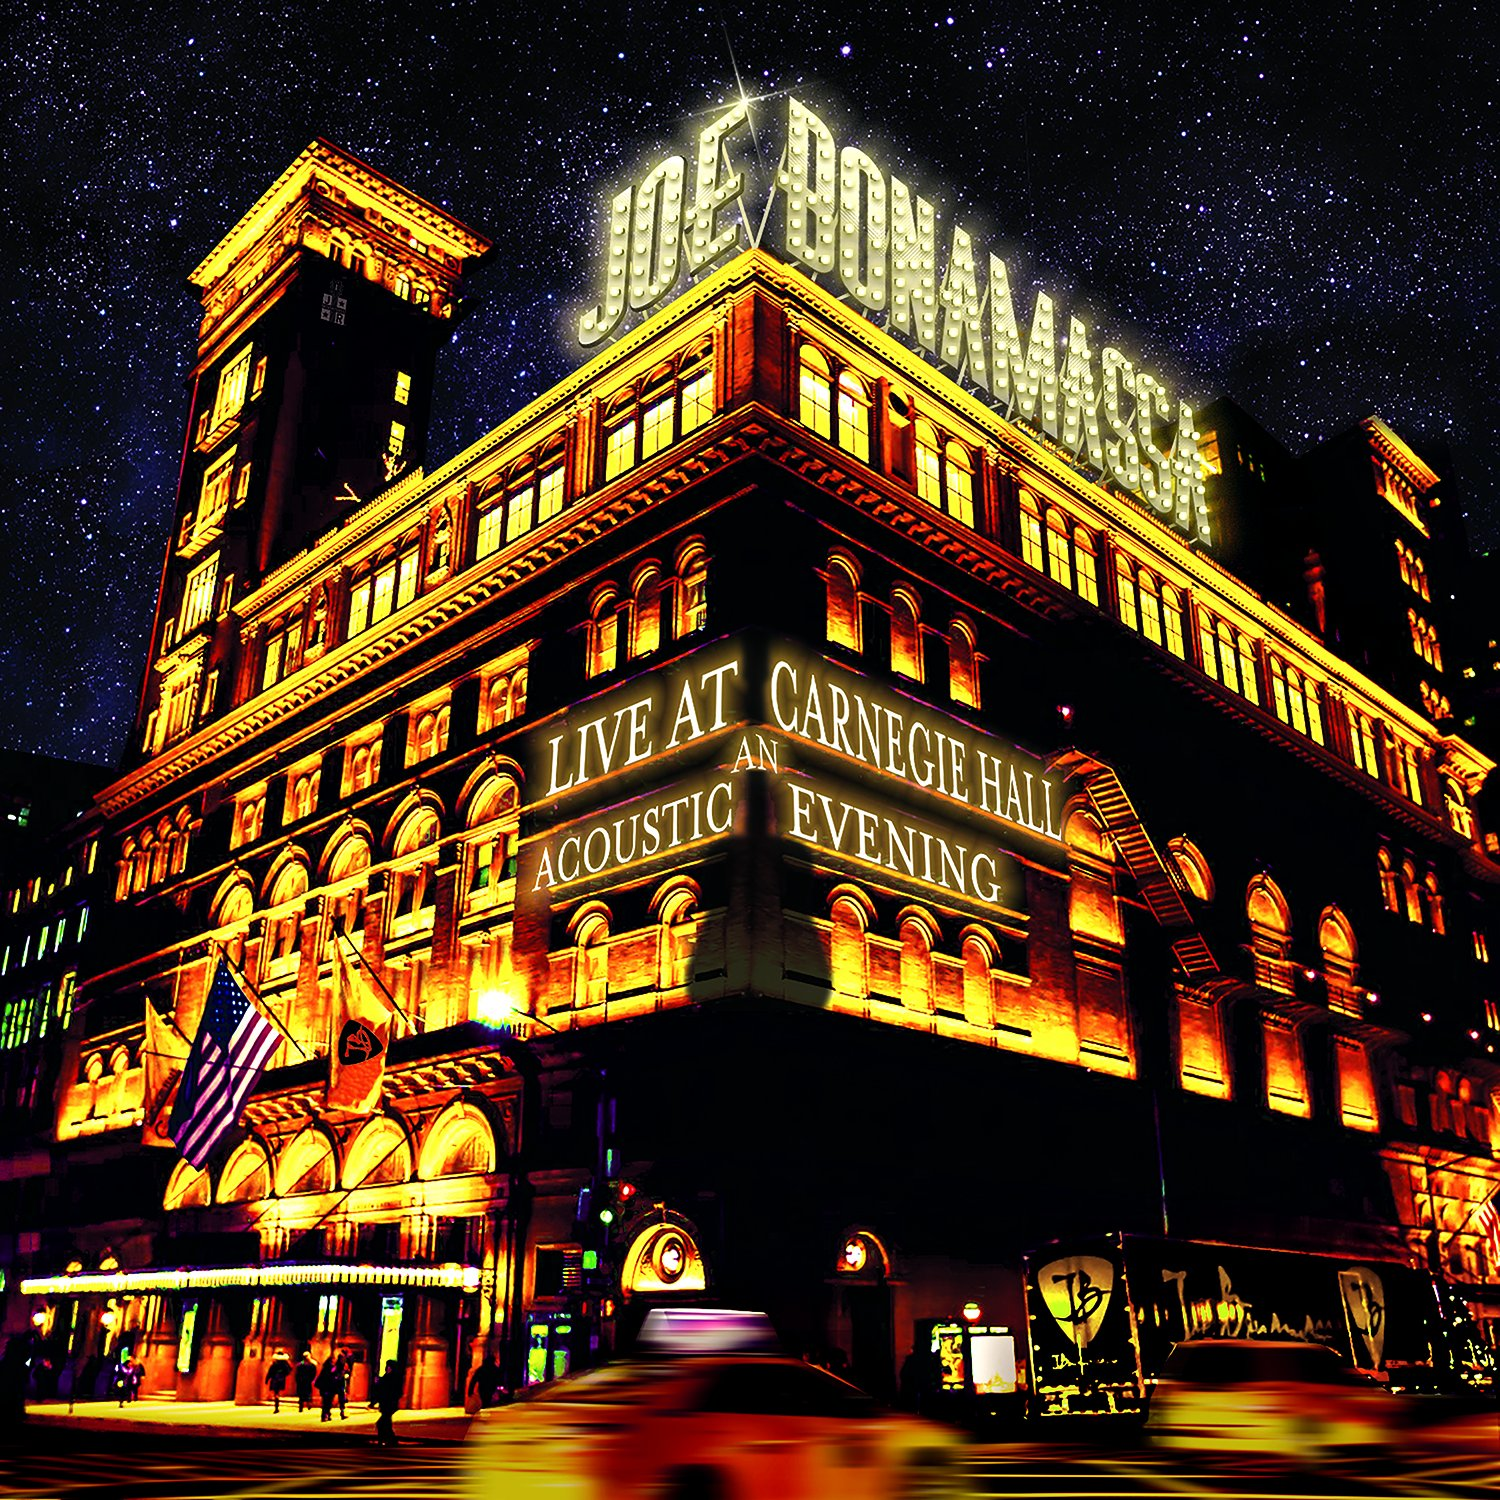 Live At Carnegie Hall - An Acoustic Evening [2 CD] by J&R Adventures (Image #1)